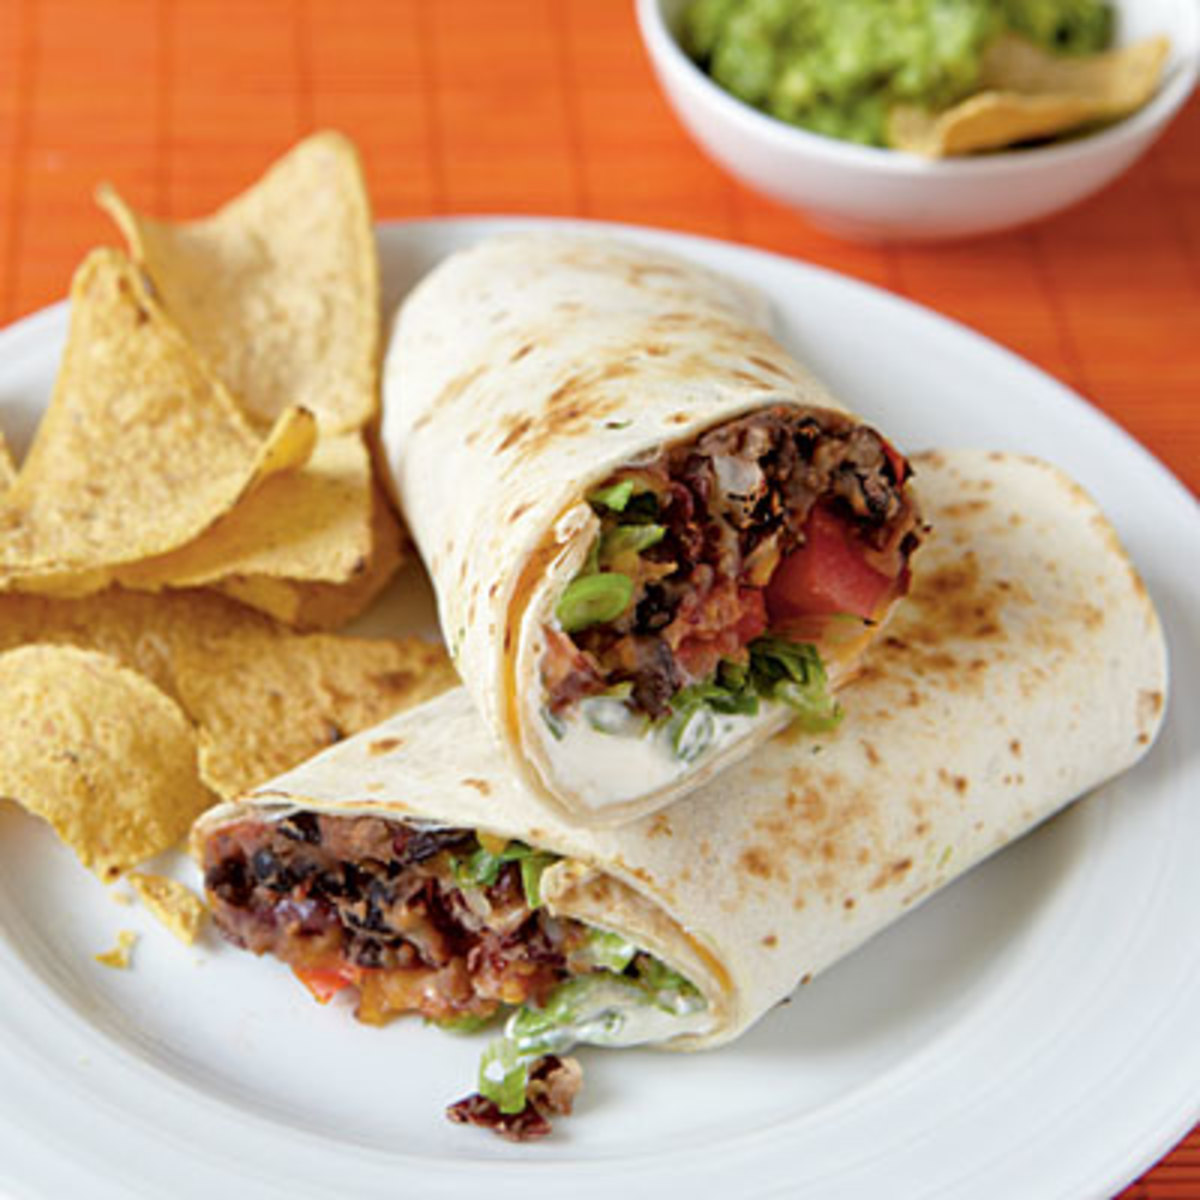 Vegetarian Burritos With Spanish Rice, Salsa, and Guacamole